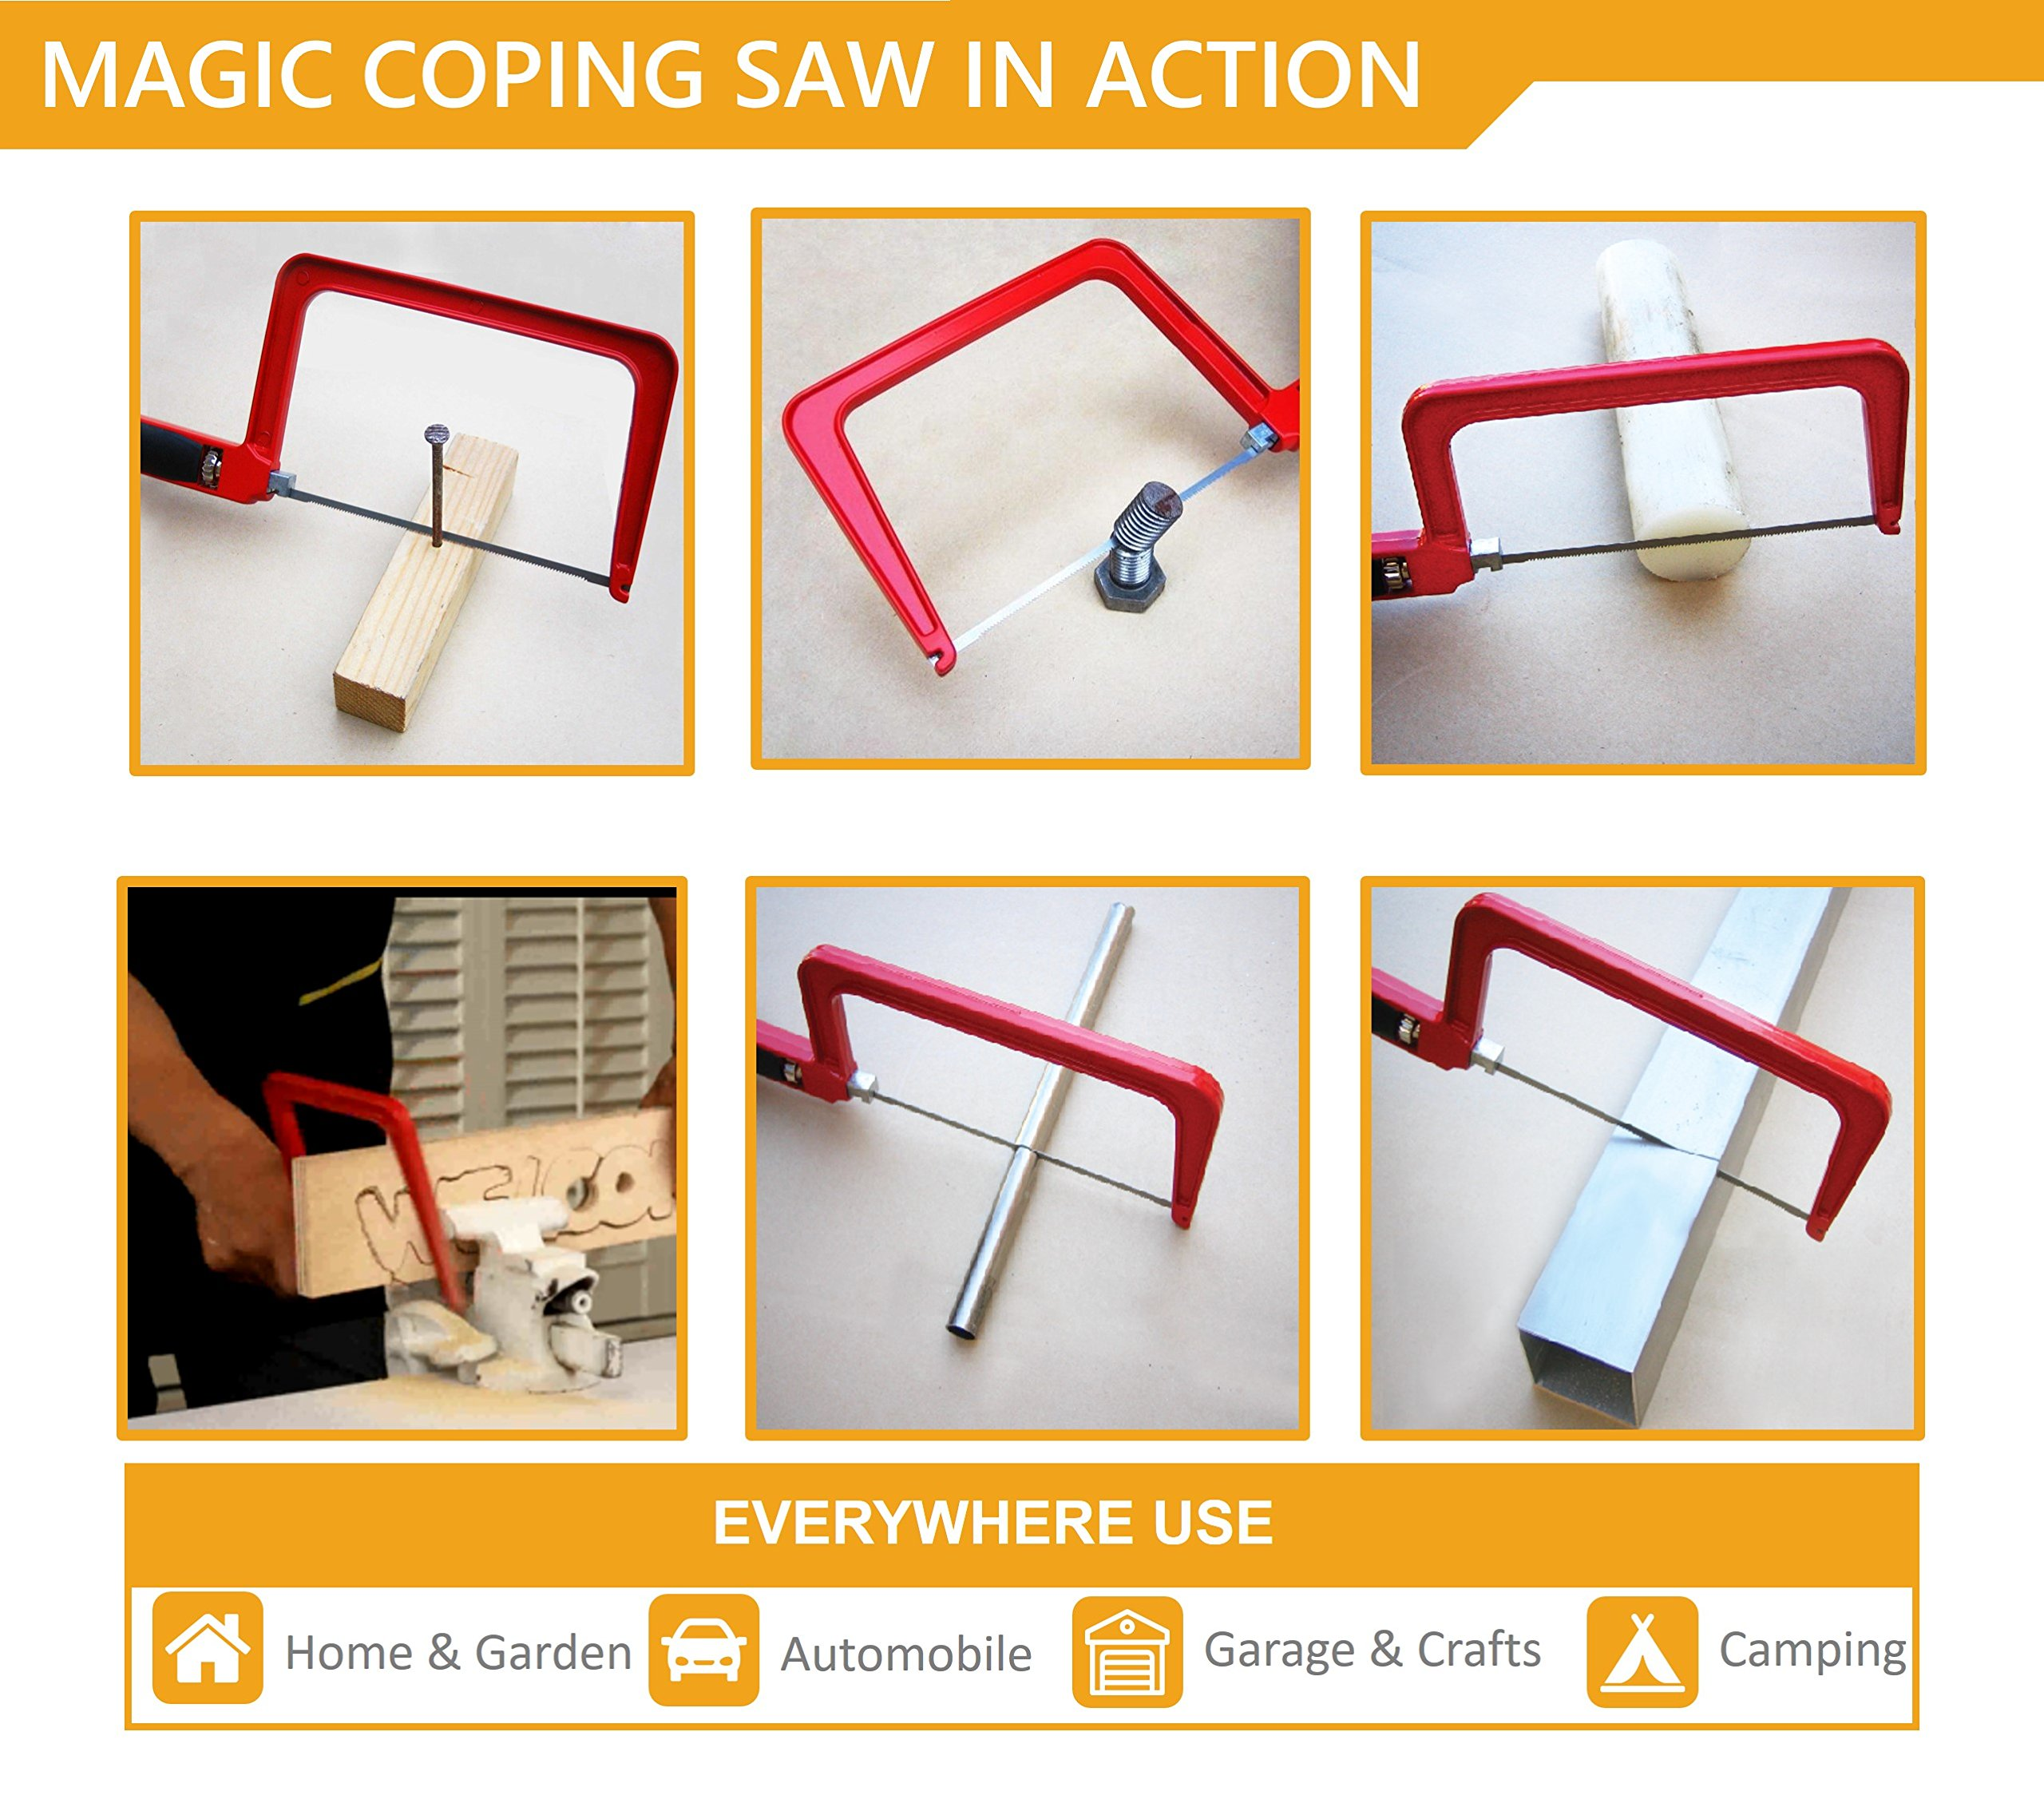 Original Magic Coping Saw with 6 inch High Carbon Steel Pins Blades, a Heavy Duty H shape Metal Frame Works as Fret Saw, Hacksaw, and Pruning Saw & Suitable to Cut Wood, Plastic, PVC, Aluminum, Nails by Amazing Tools (Image #3)